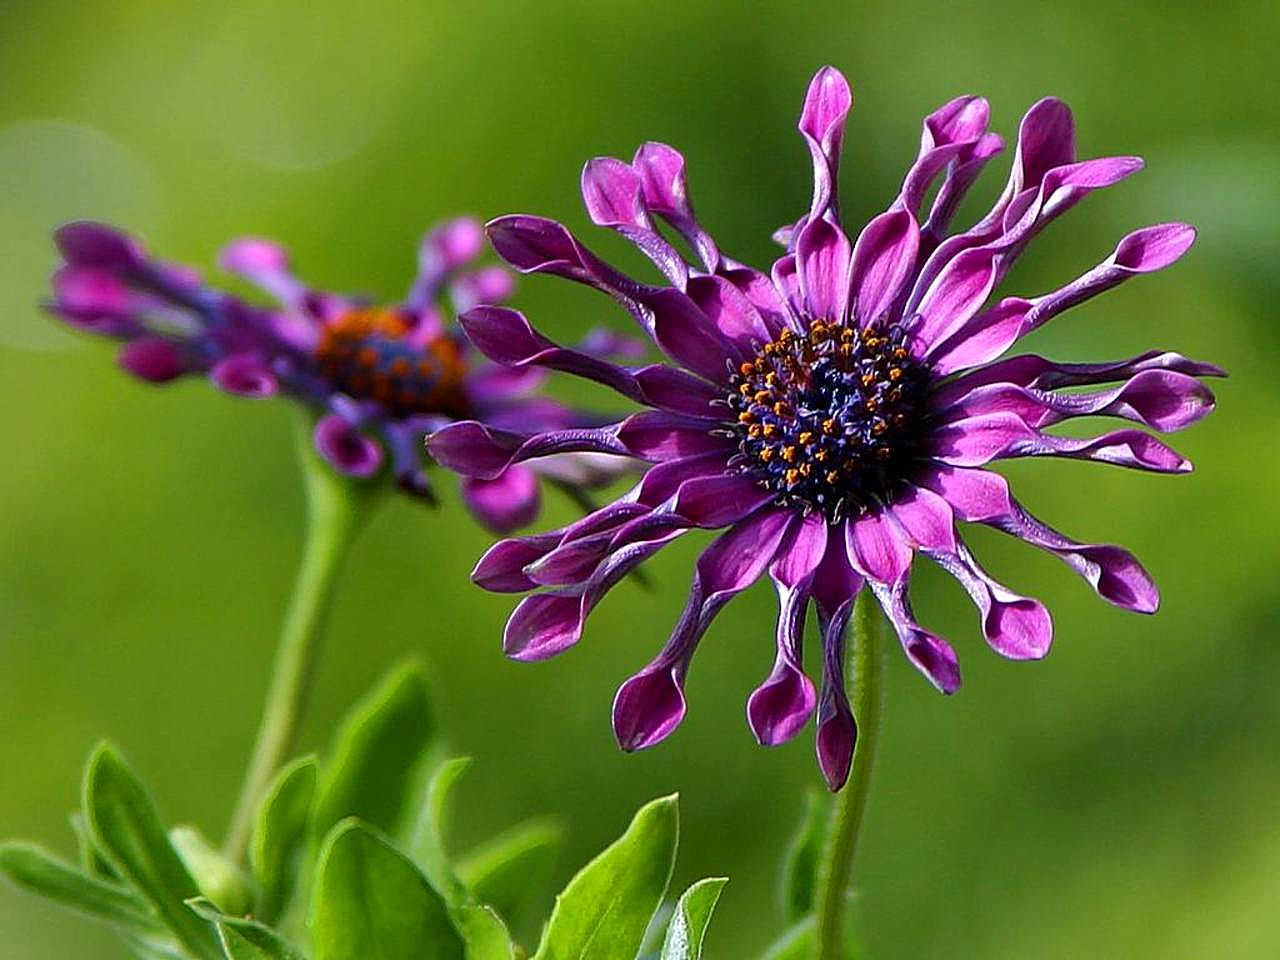 Blok888: Top 10 Most Beautiful Flowers in the world 2 |Most Magnificent Flowers